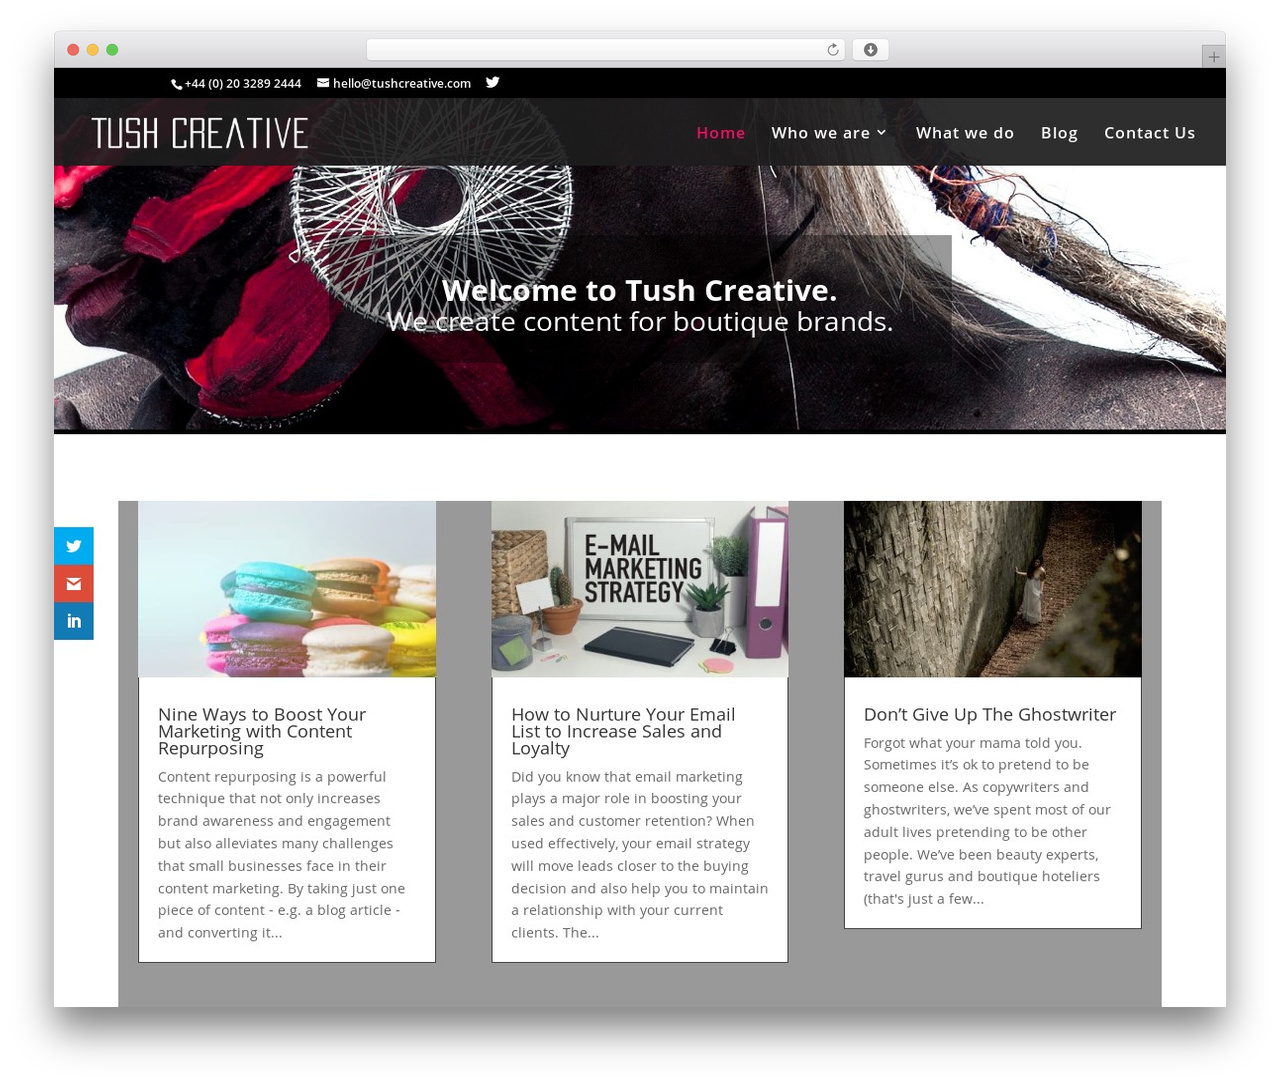 Divi WordPress theme by Elegant Themes - tushcreative.com